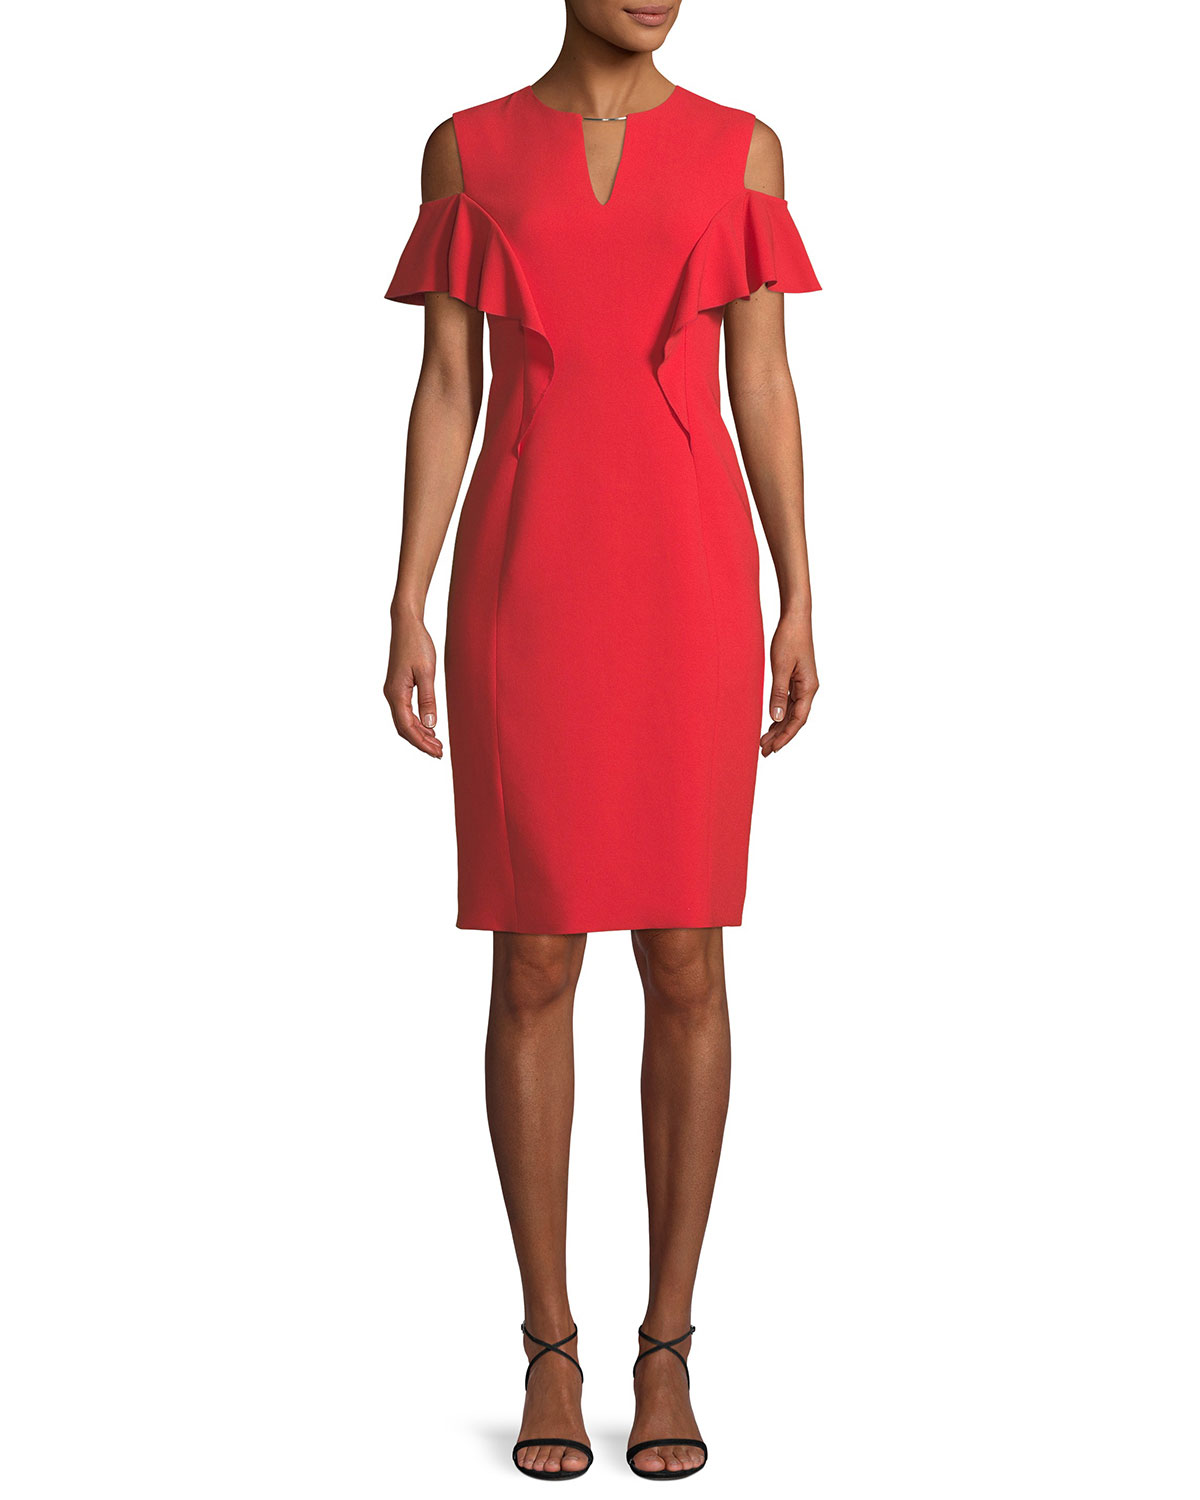 9455b2e05970 Elie Tahari Johari Ruffle-Sleeve Sheath Dress | Neiman Marcus